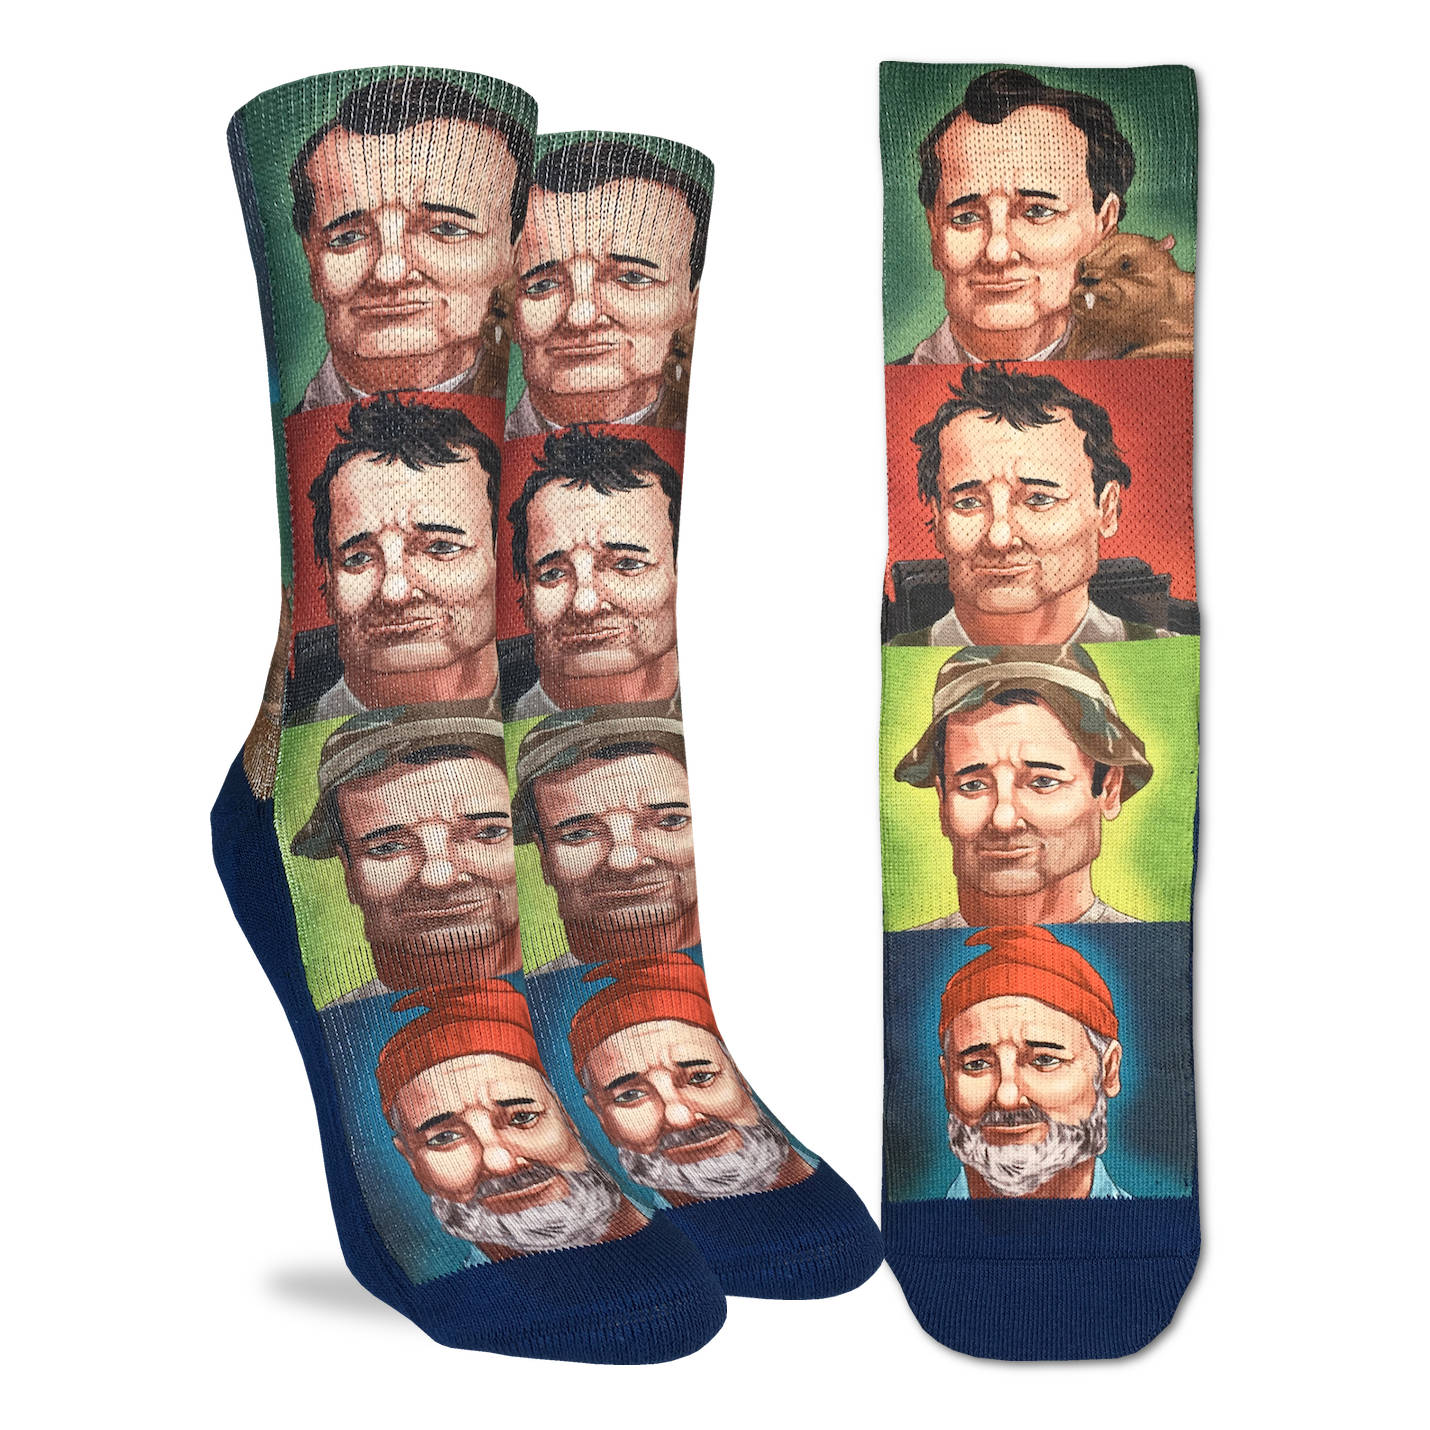 Women's Bill Murray Socks - Good Luck Sock